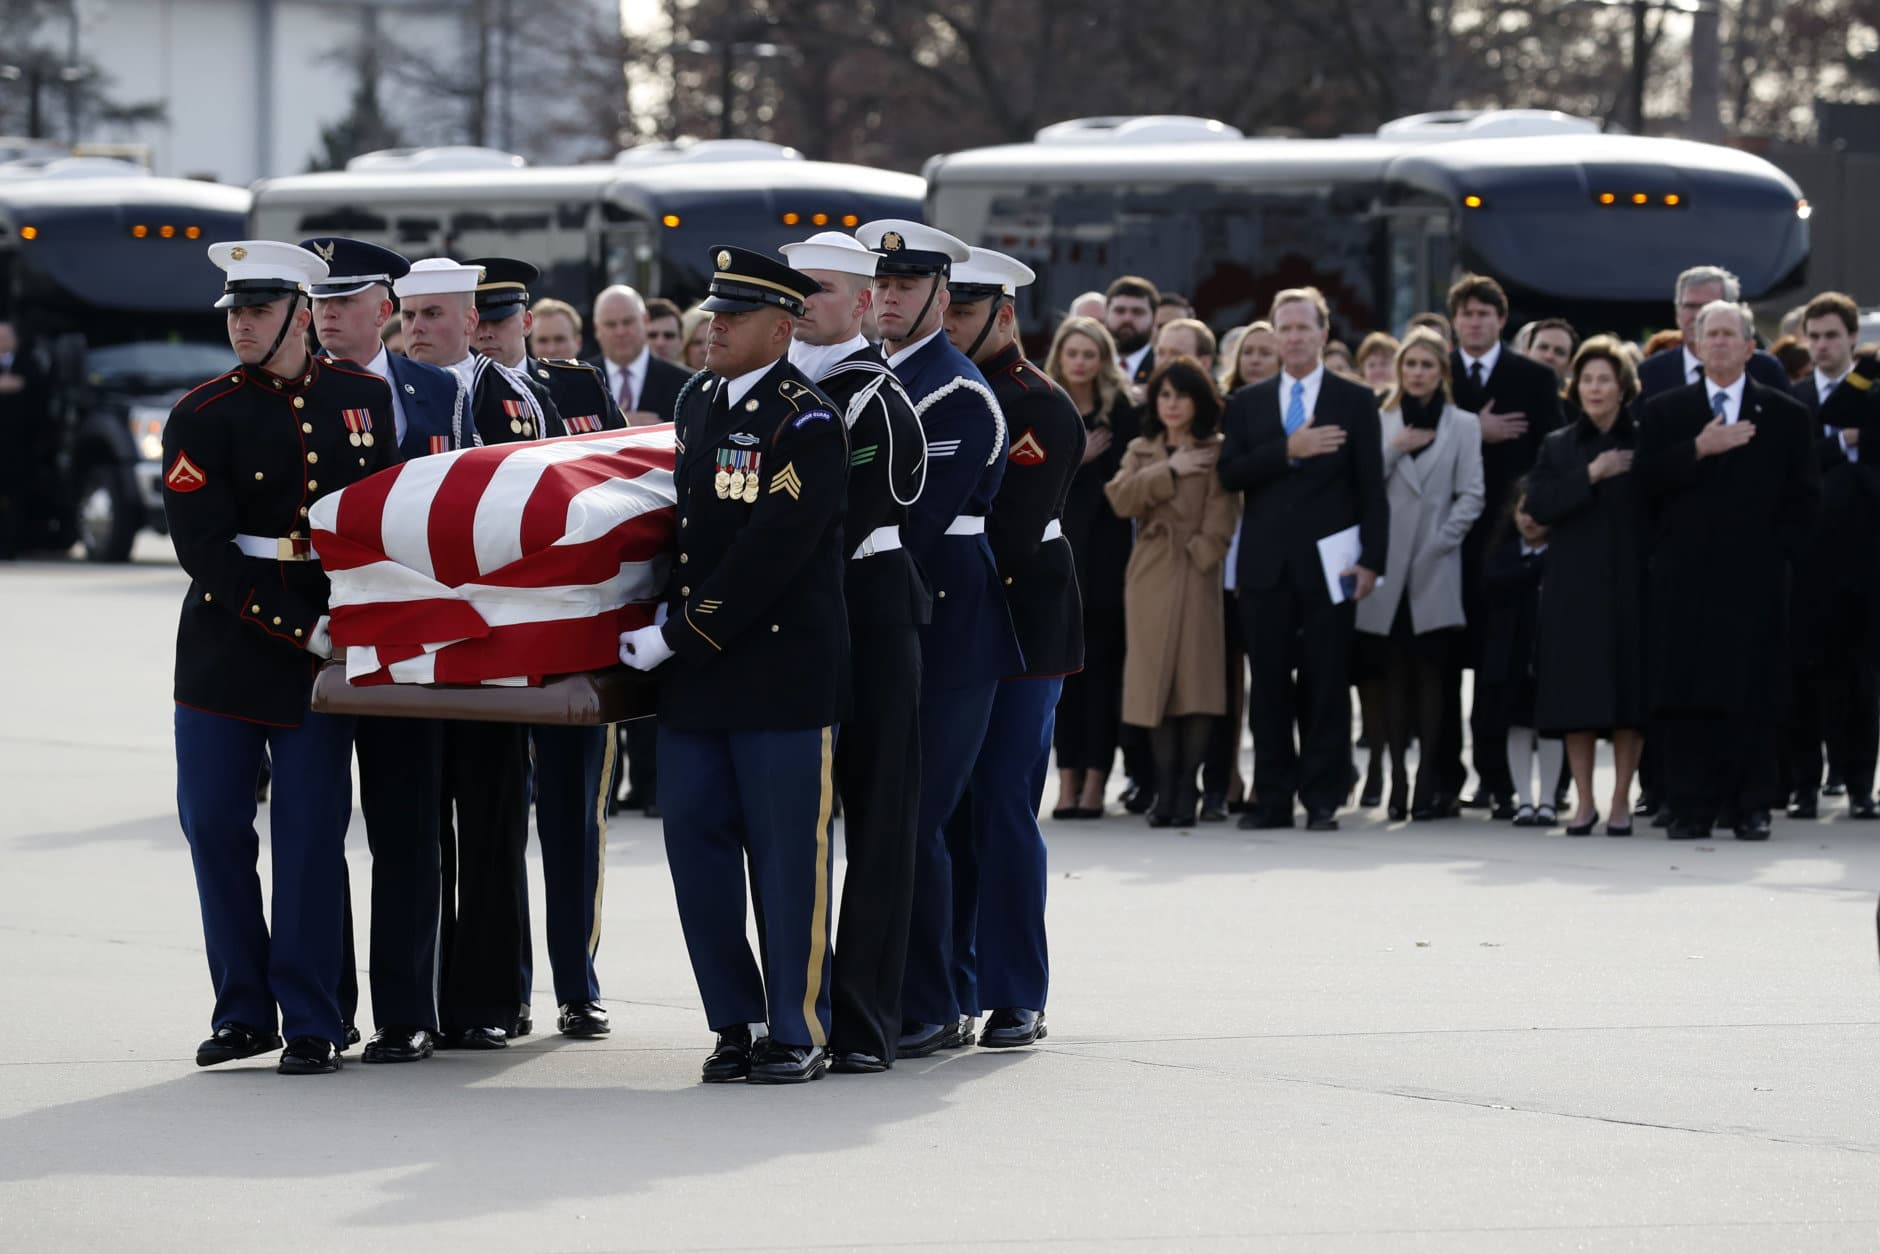 Former President George W. Bush, former first lady Laura Bush and other family members watch as the flag-draped casket of former President George H.W. Bush is carried by a joint services military honor guard to Special Air Mission 41 on December 5, 2018, at Joint Base Andrews, Maryland. (Photo by Alex Brandon - Pool/Getty Images)